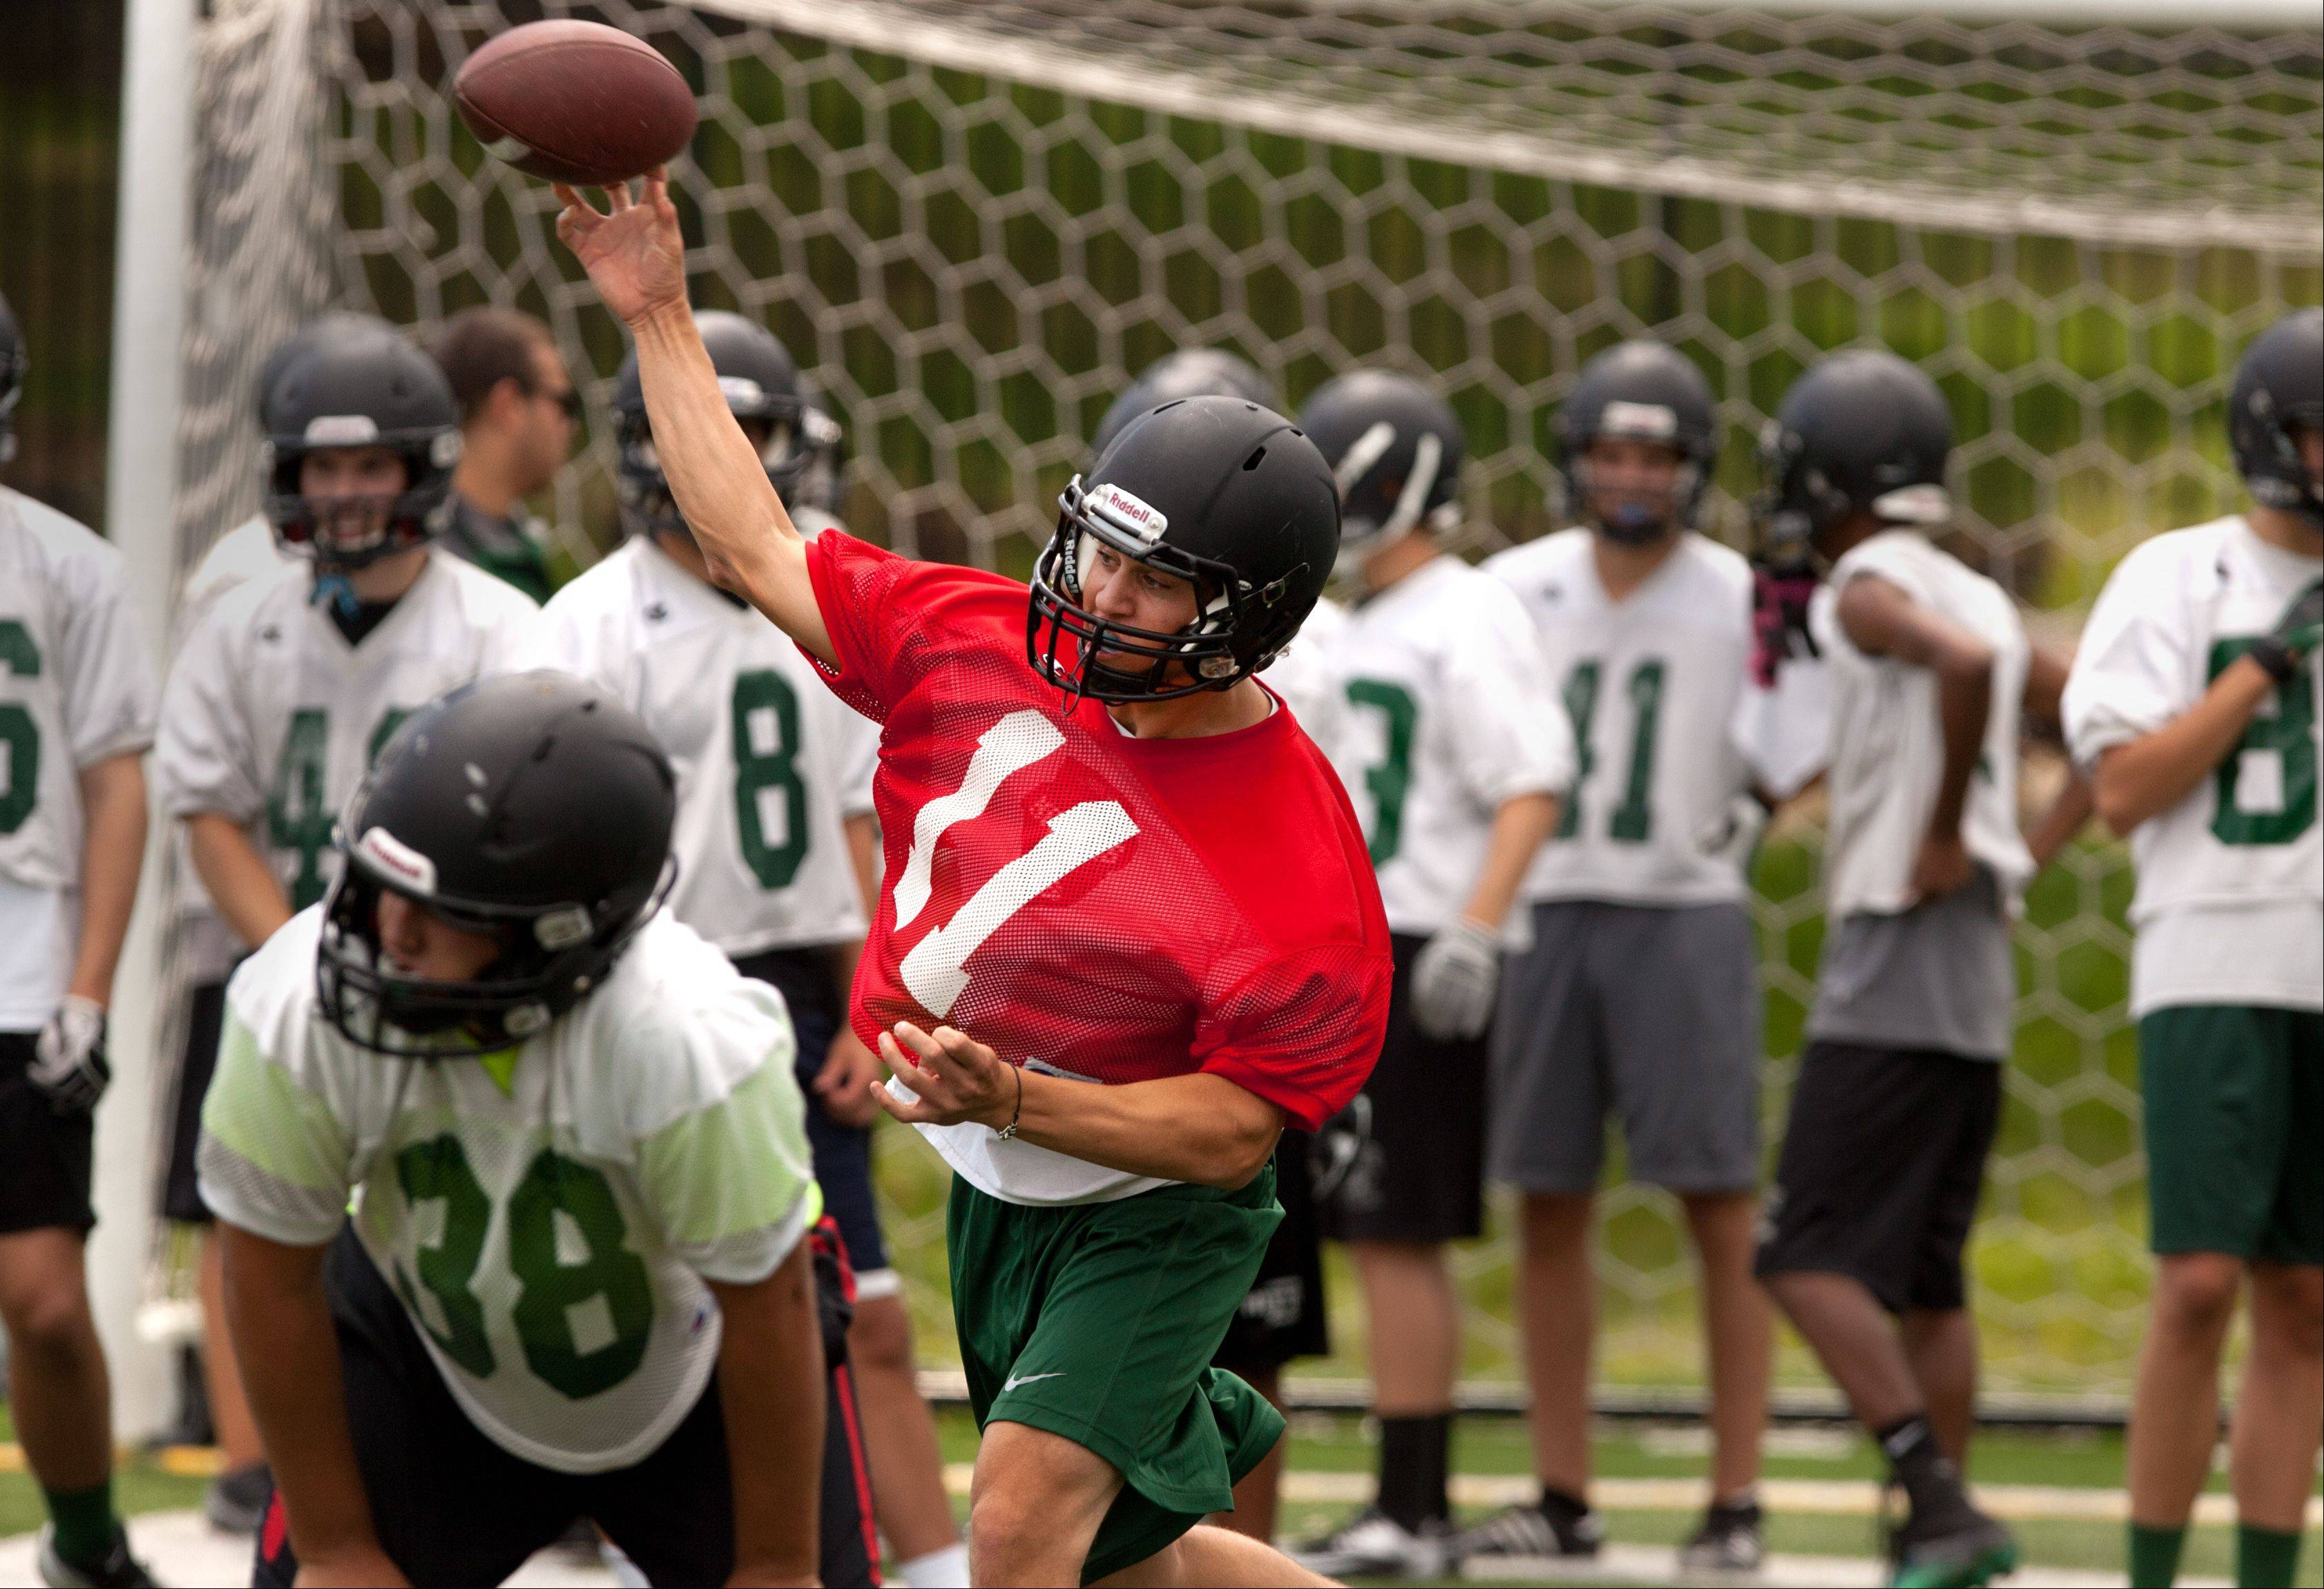 Glenbard West quarterback Drew Vogg, during the first day of practice.